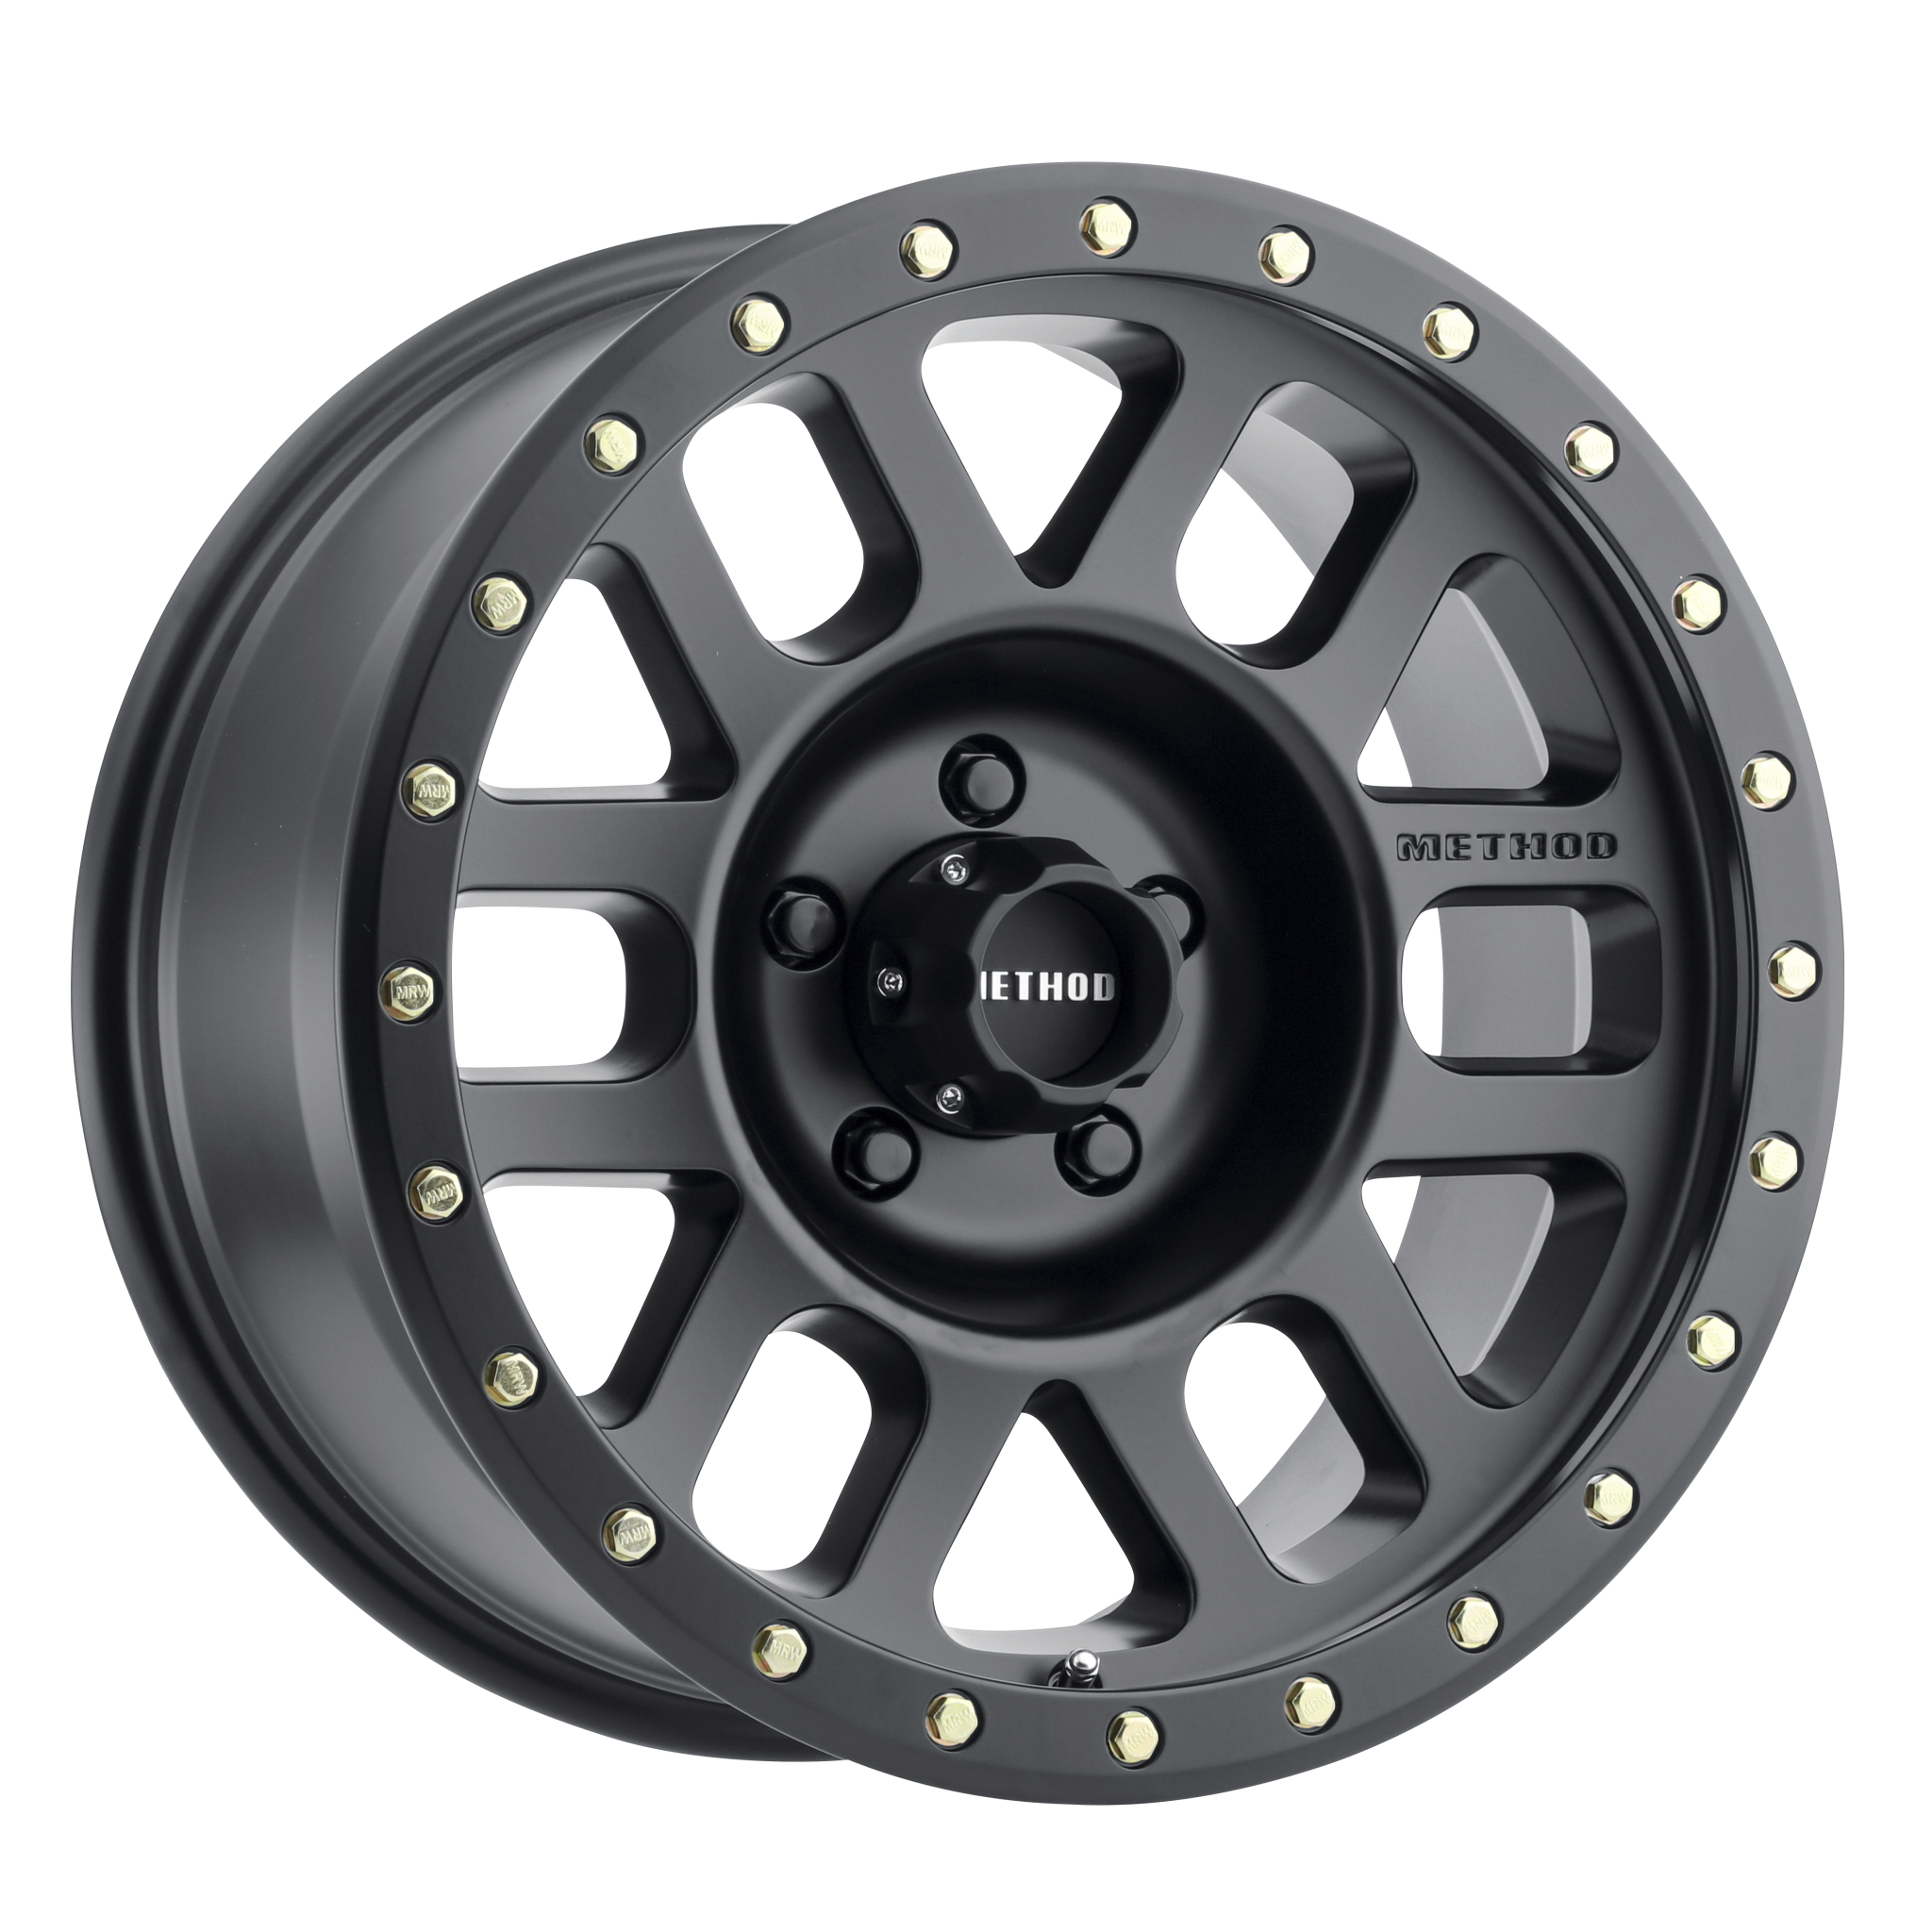 Method 309 Grid, 18x9, +18mm Offset, 5x150, 116.5mm Centerbore, Matte Black